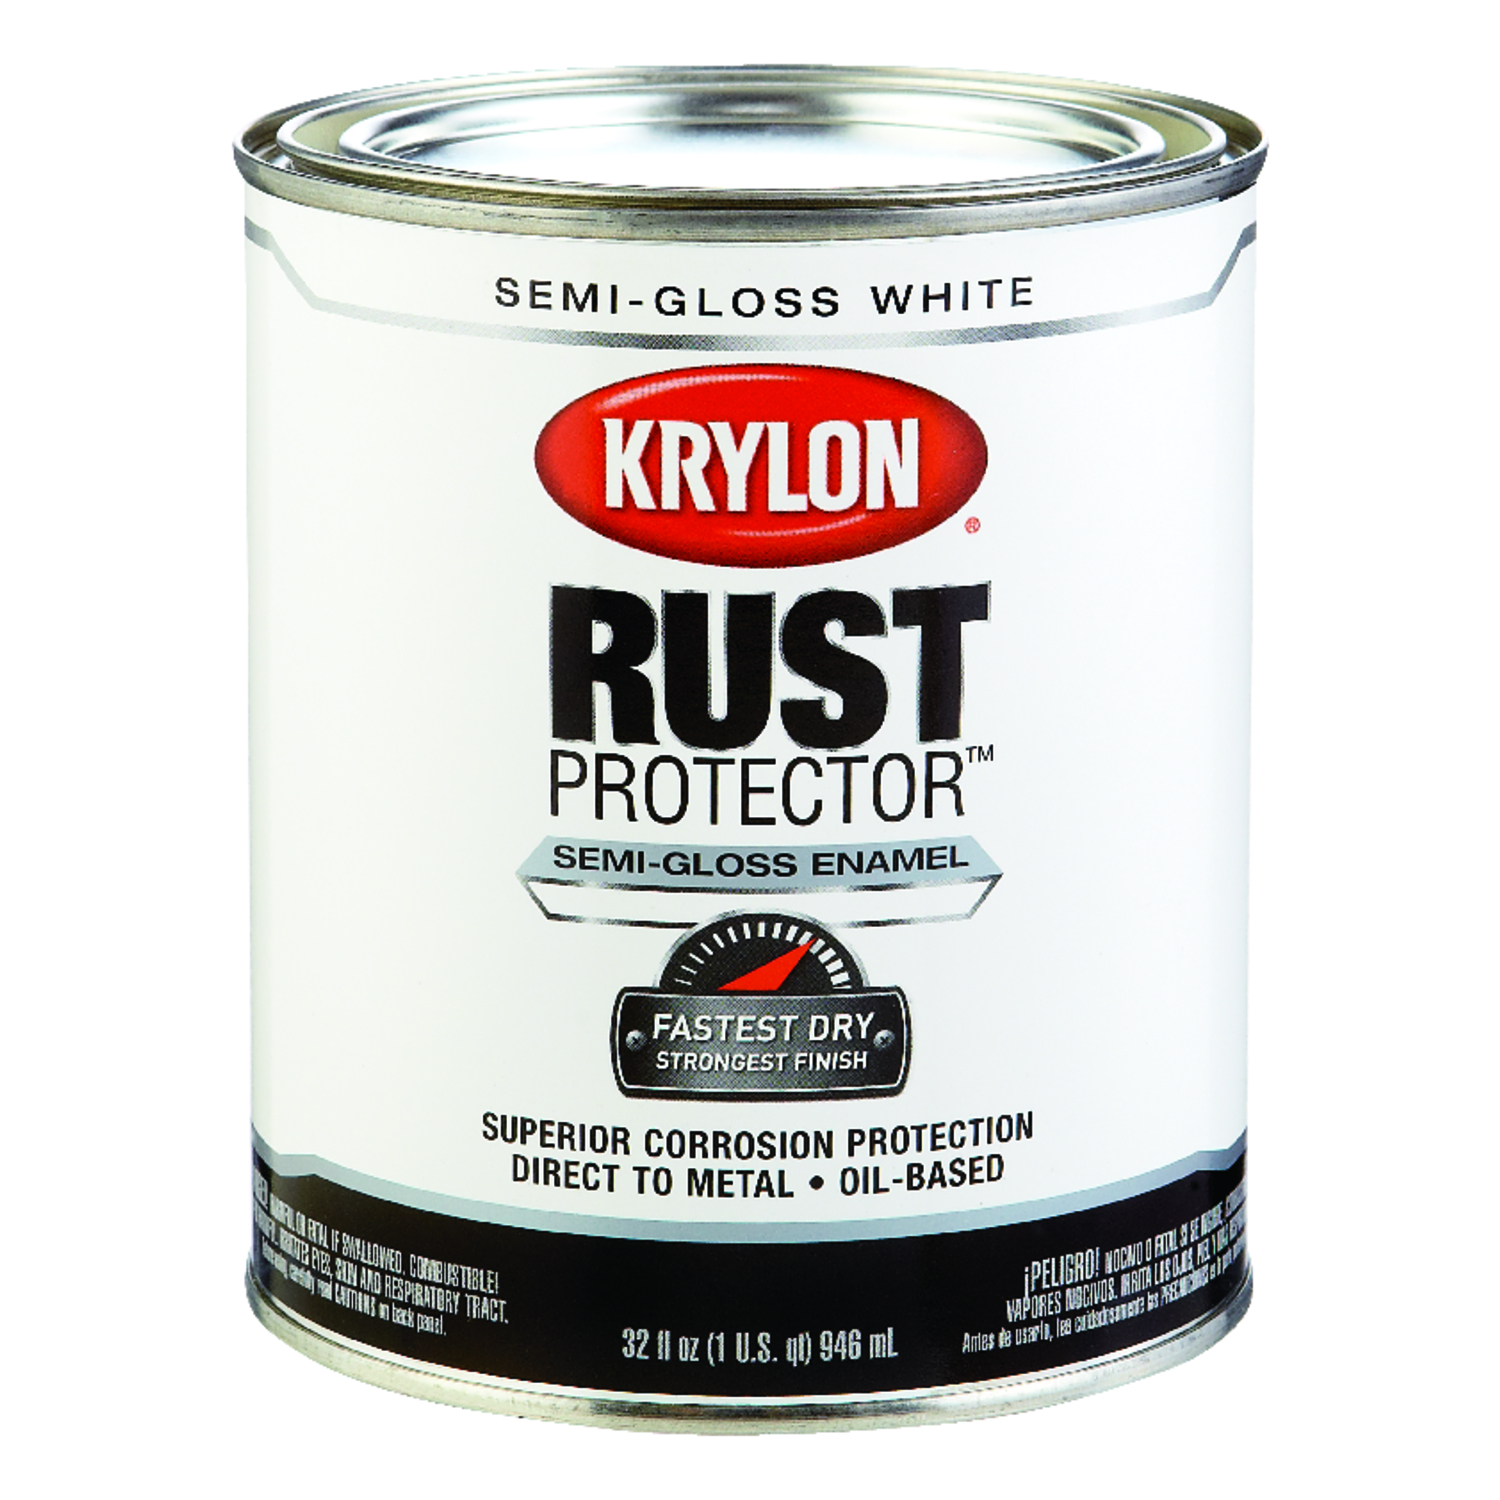 Krylon  Indoor and Outdoor  Semi-Gloss  White  Enamel  Rust Protector Paint  32 qt.